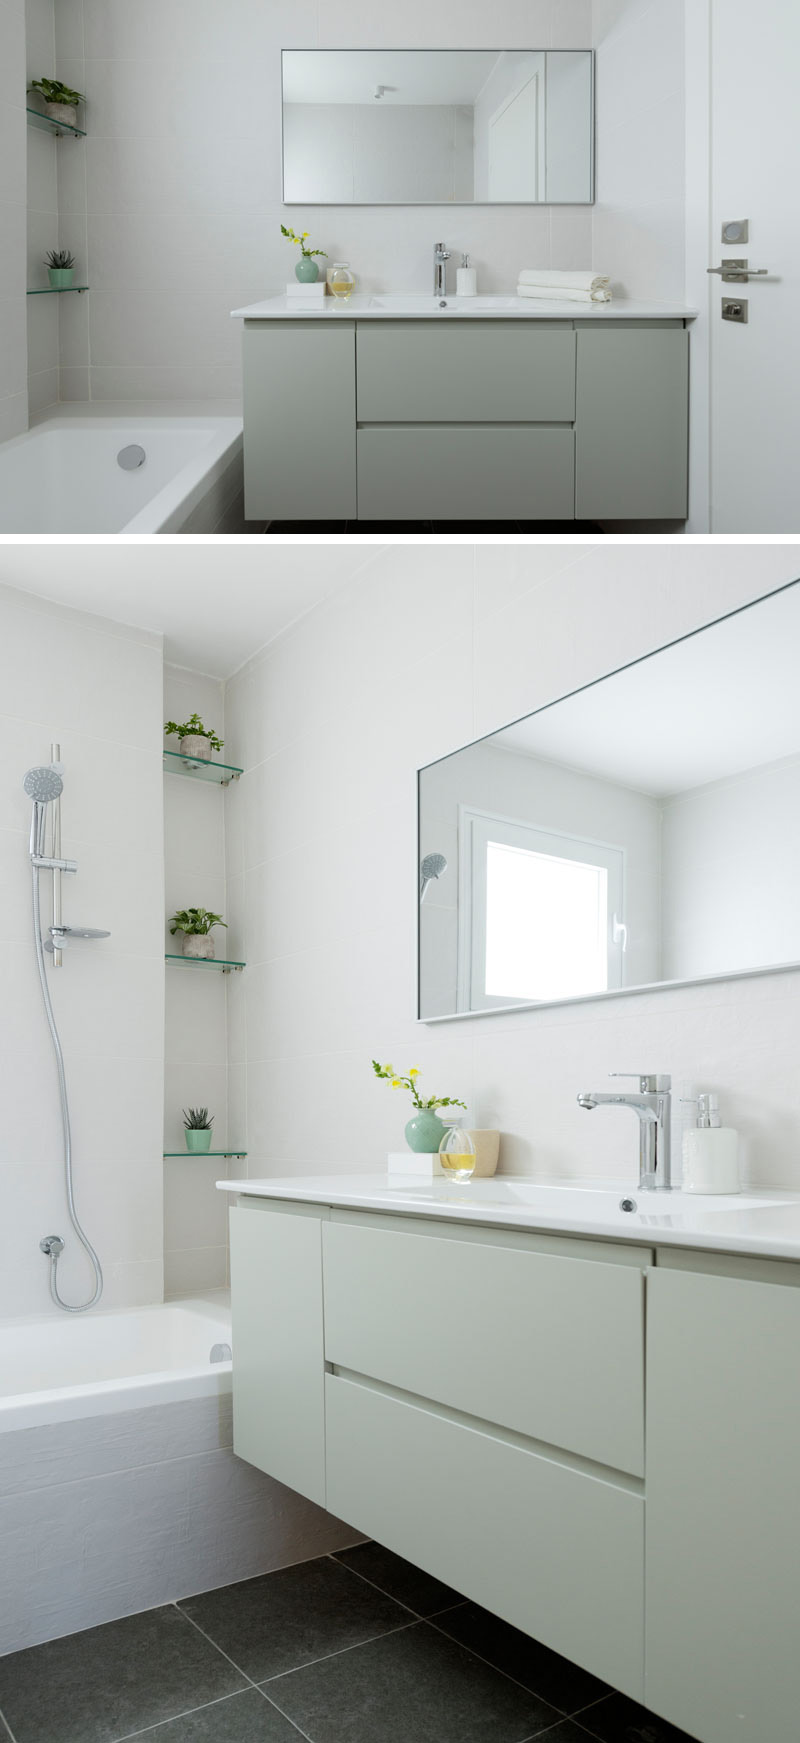 In this modern bathroom, mint green is used for the cabinets below the white sink and rectangular mirror. Glass shelves above the bathtub provide a spot for indoor plants.